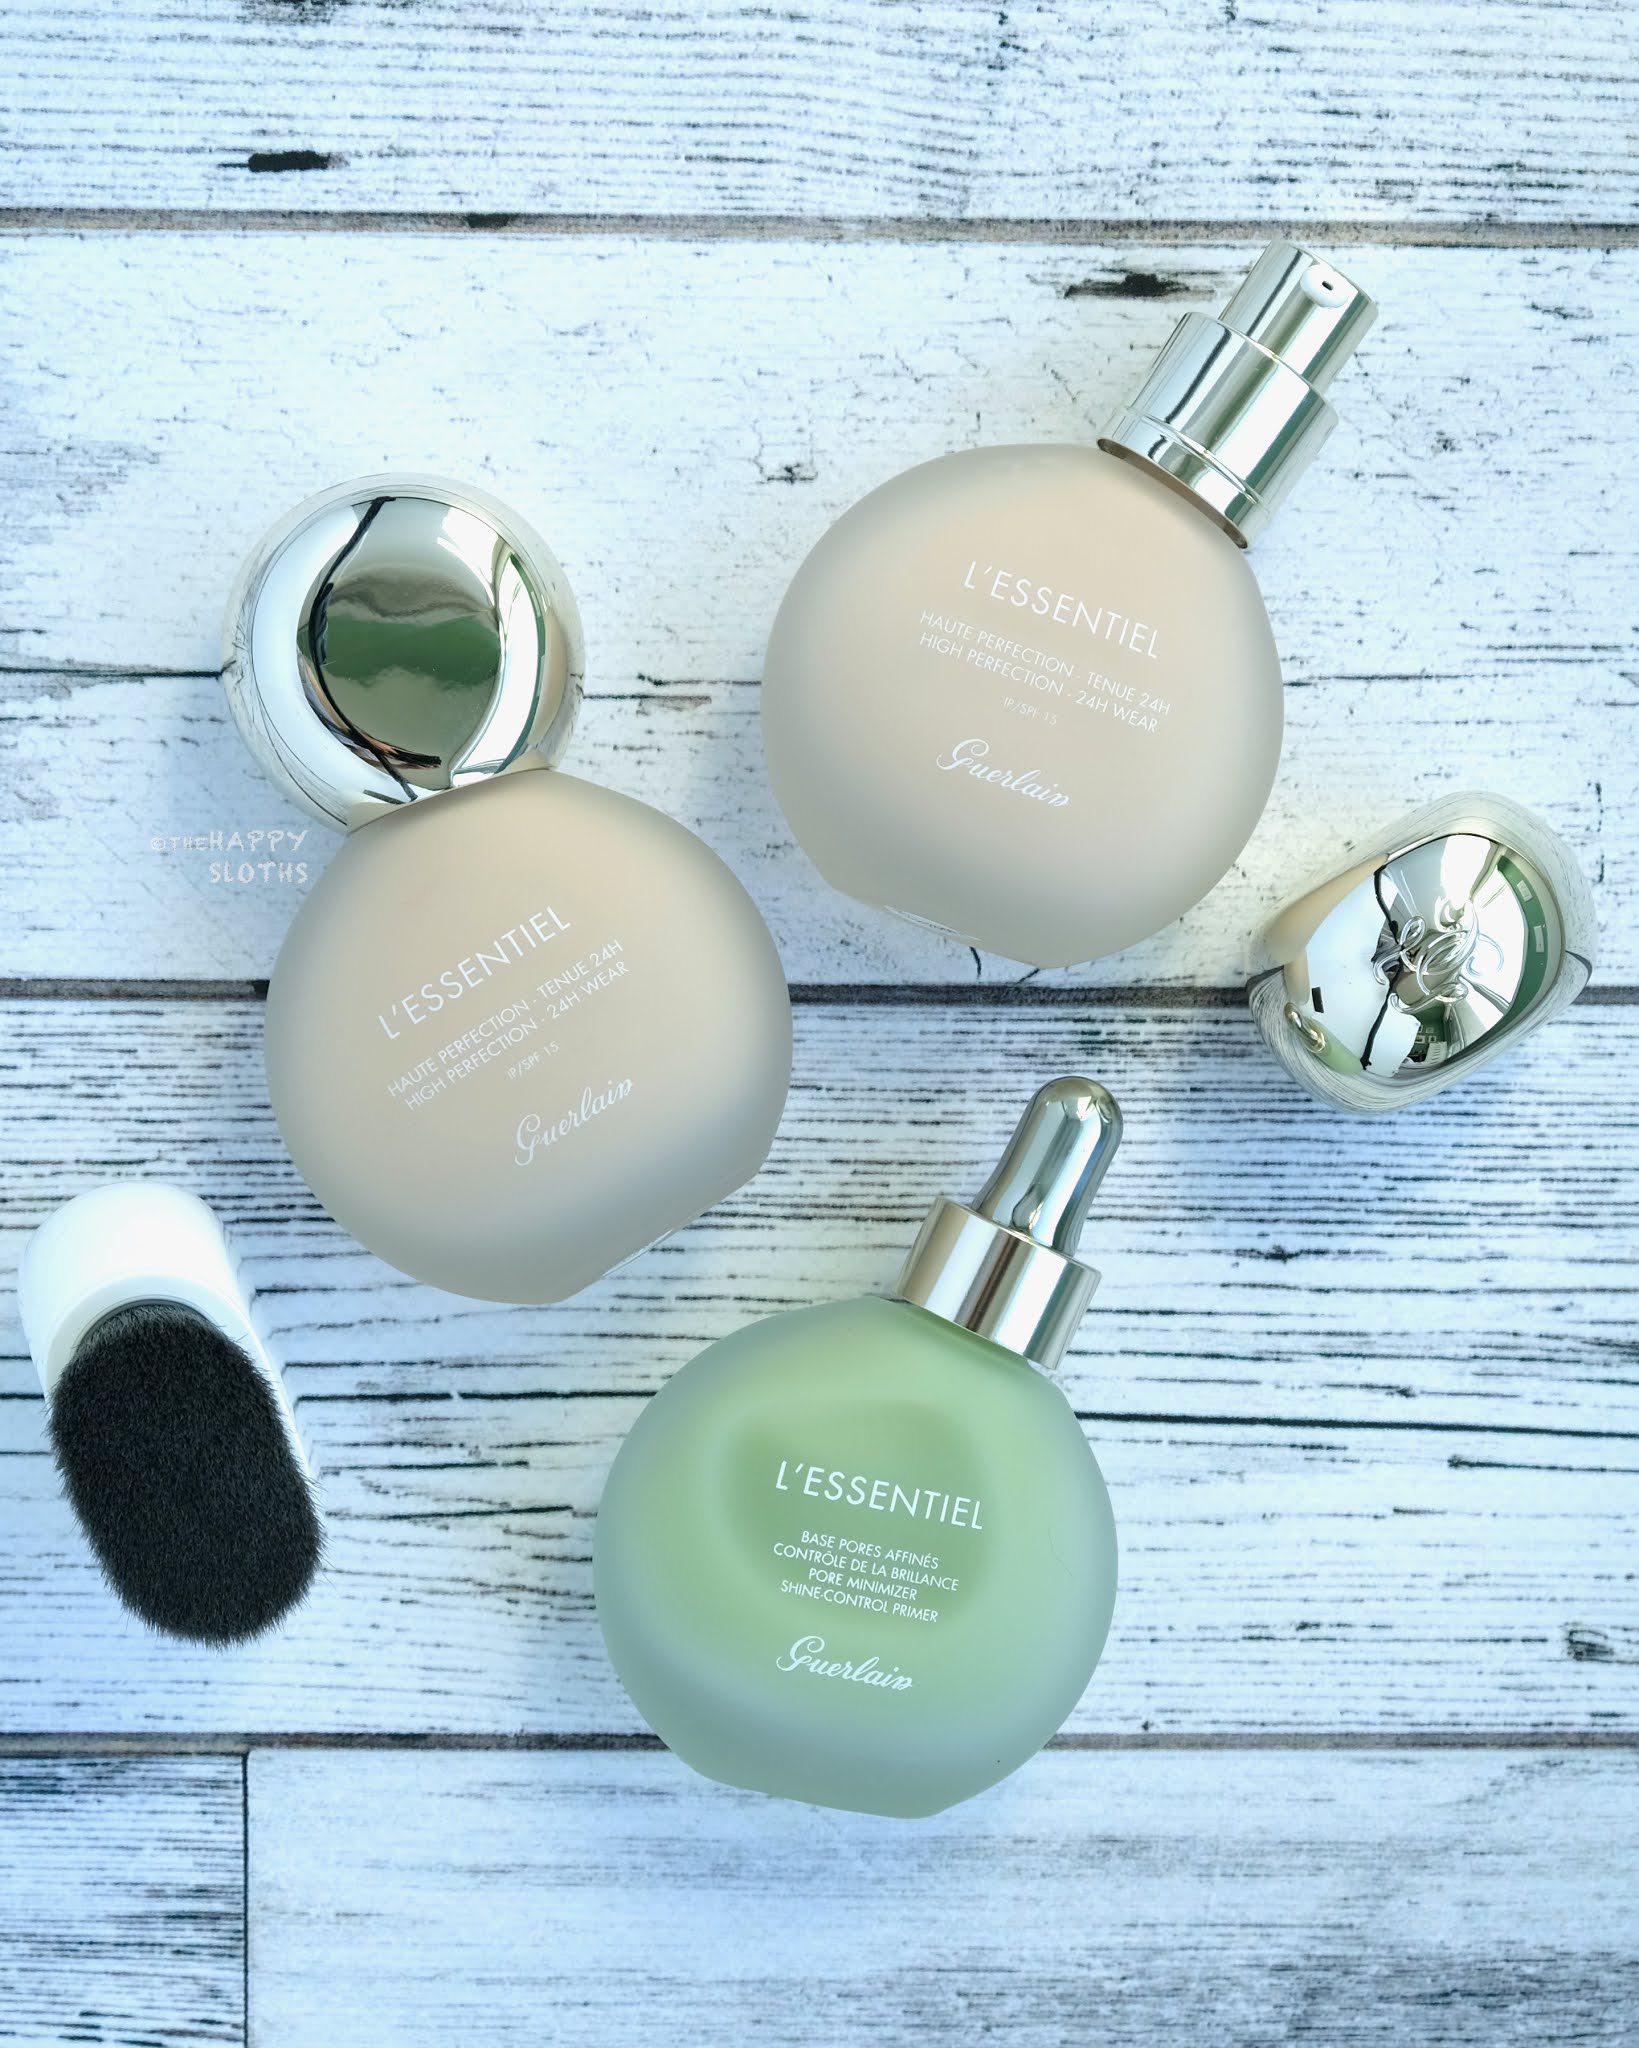 Guerlain | L'Essentiel High Perfection Foundation 24H Wear, Pore Minimizer Shine Control Primer & Retractable Foundation Brush: Review and Swatches